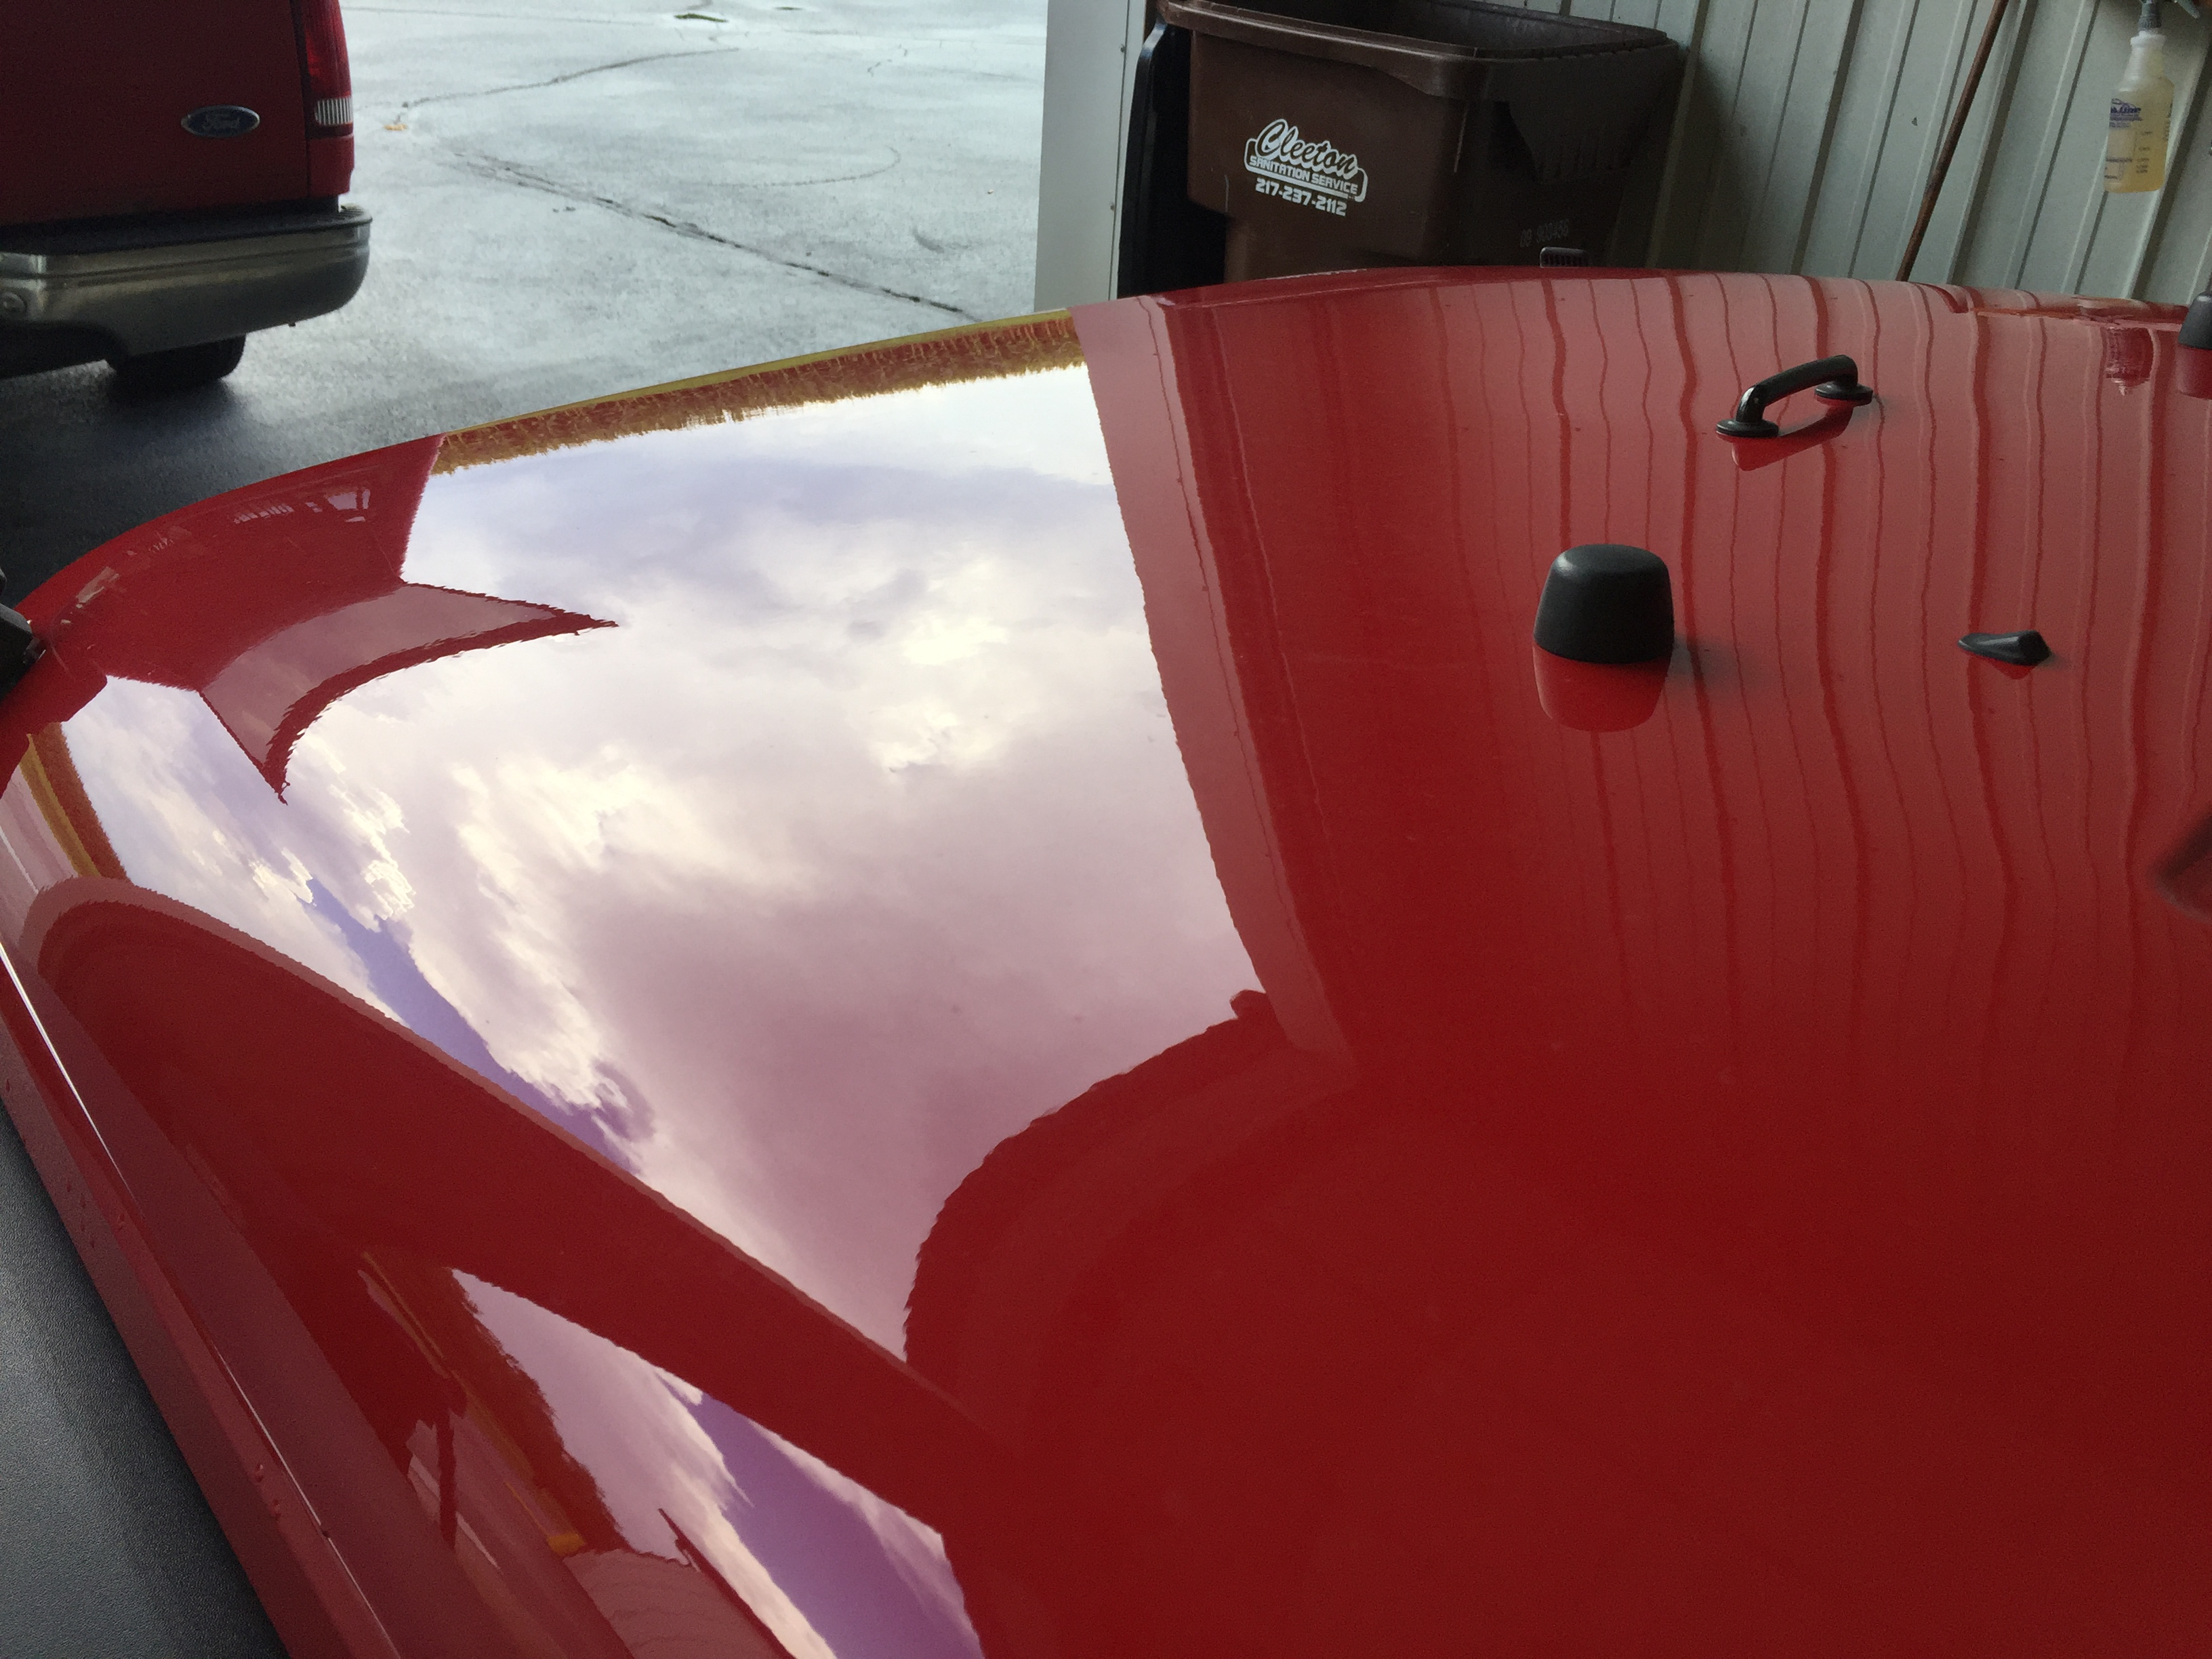 2014 Jeep Wrangler Dent Removal, Hail Damage on Hood. Springfield, IL. Paintless Dent Removal by Michael Bocek with http://217dent.com